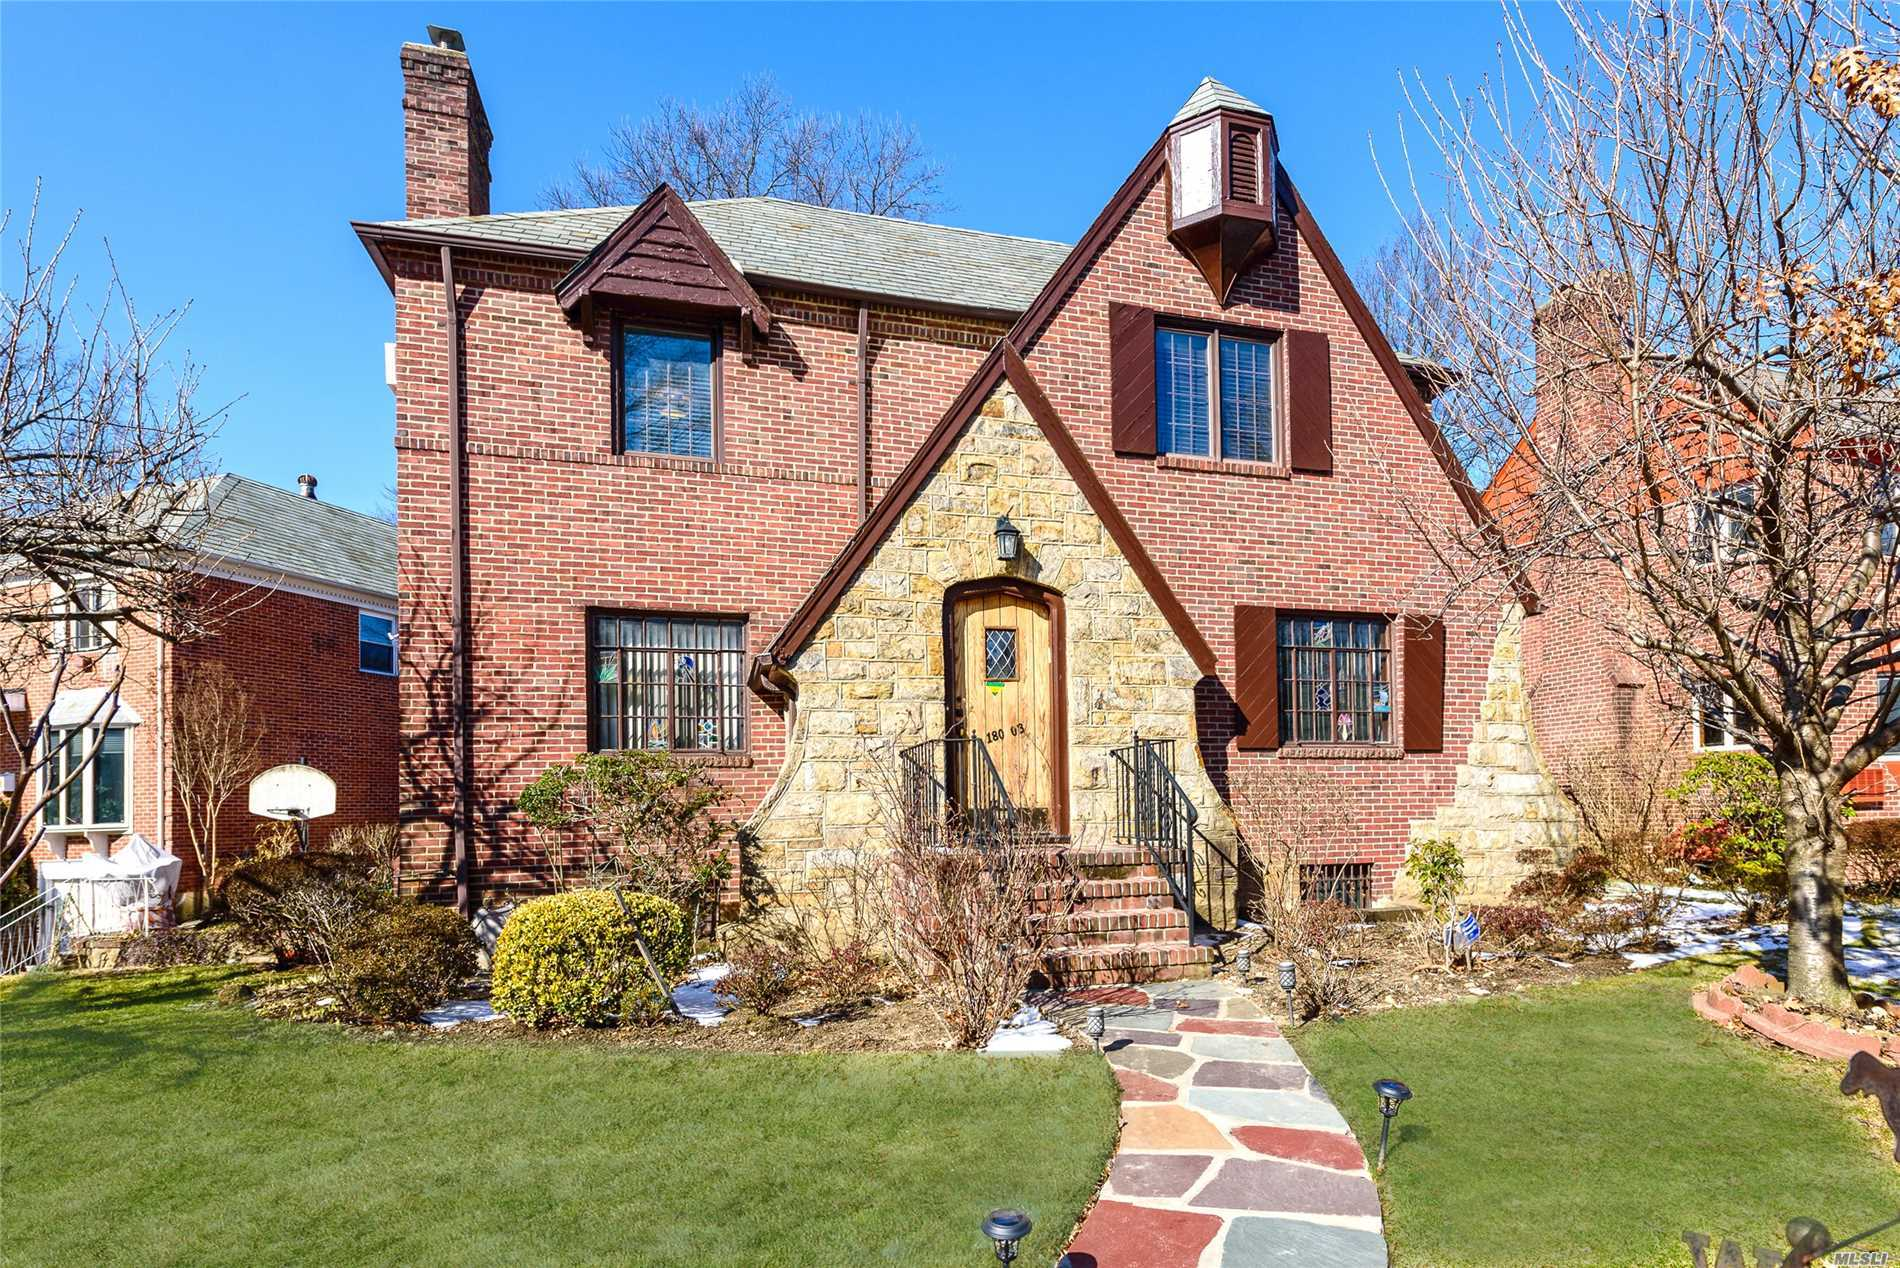 Jamaica Estates. Breathtaking Tudor Colonial One Family Home With So Much Charm & Warmth. Located In The Heart Of Jamaica Estates. Huge 5 Bedrooms, 3 Full Baths, Including A Master Bath In The Master Bedroom. Formal Dining Room, 2 Fireplaces, Huge Living Room, Den, 2-Car Garage. Large Backyard, Ample Closet Space And Lots Of Light.